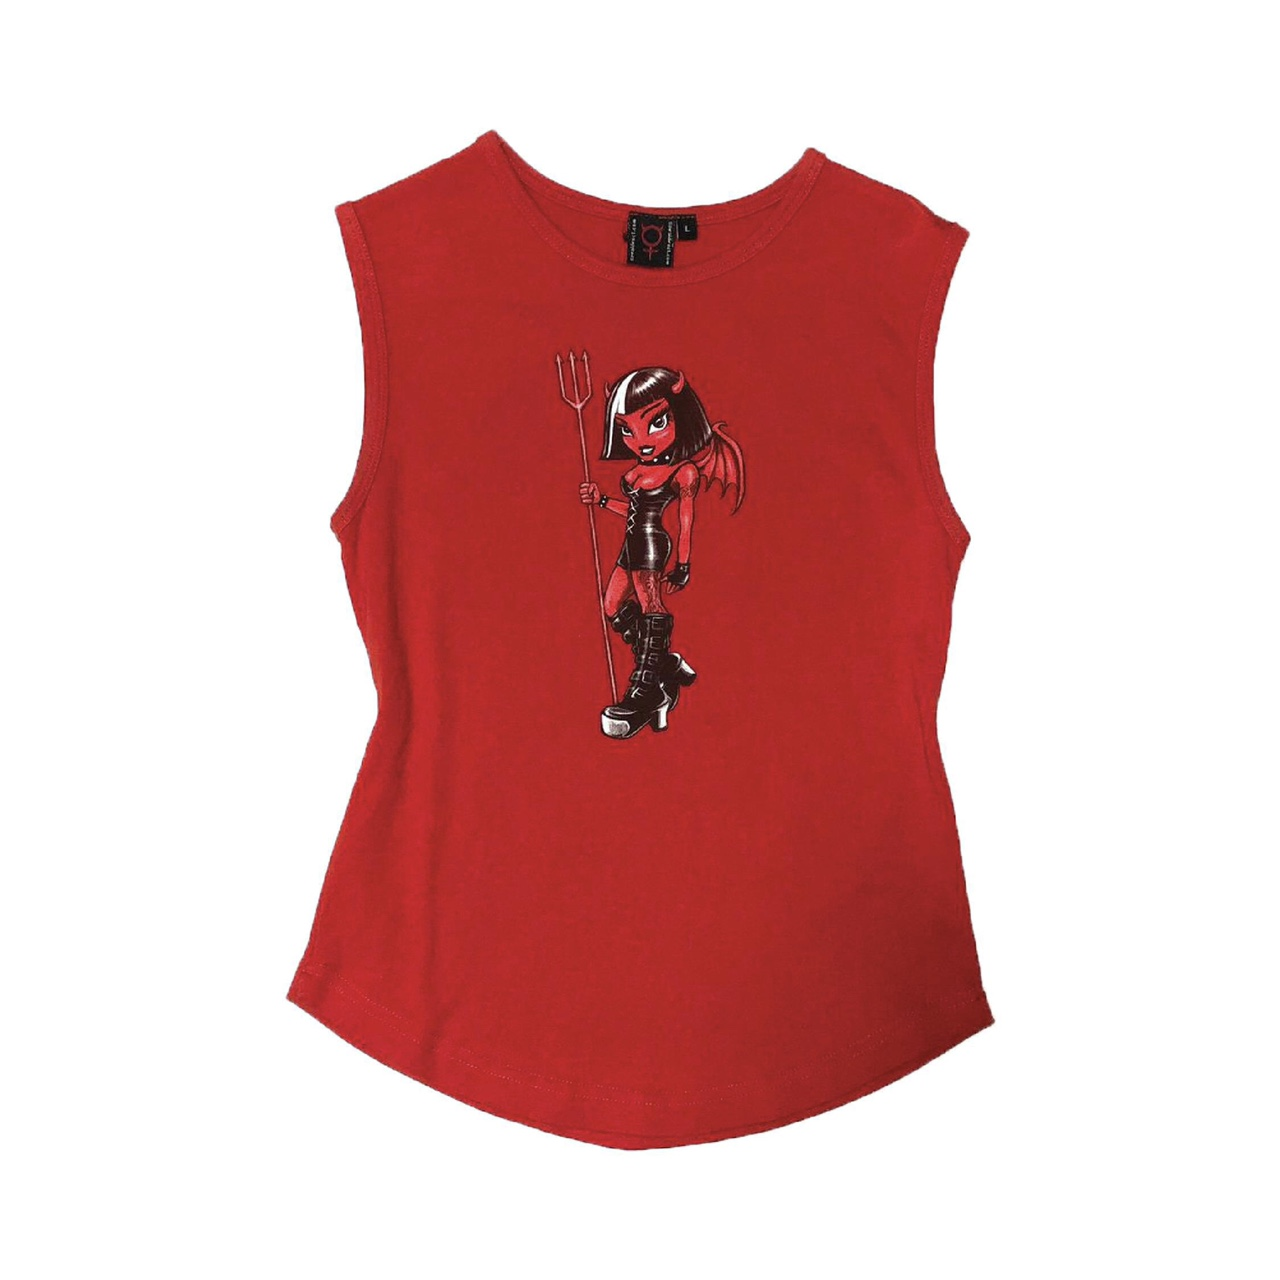 Product Image 1 - vintage 90s/2000s MALL GOTH TANK